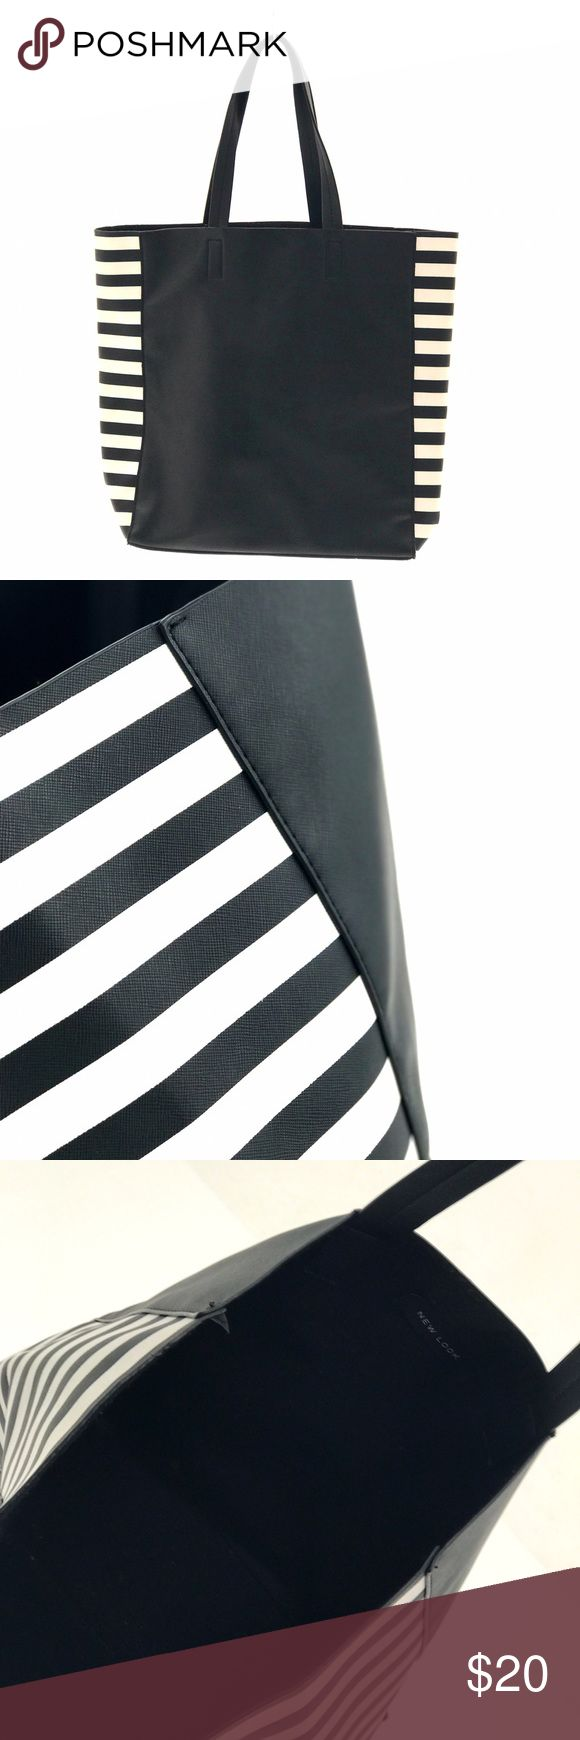 BLACK AND WHITE STRIPED TOTE Black and white striped tote // No pockets, just a drop all tote // White paint splotches on bottom of bag // Good used condition New Look Bags Totes